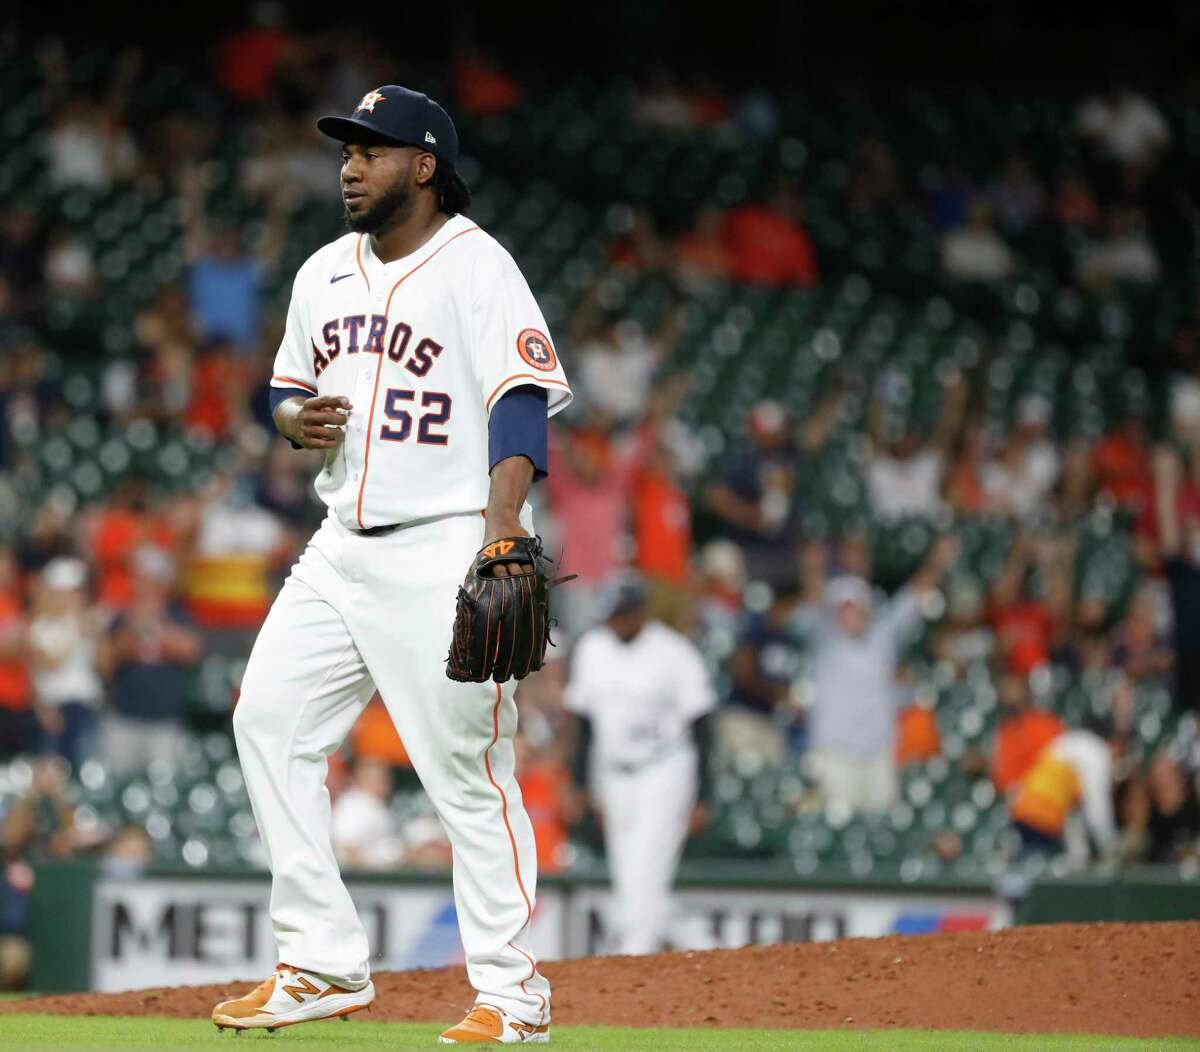 After waiting 102 games to see him in action, the Astros placed Pedro Báez back on the injured list Tuesday.